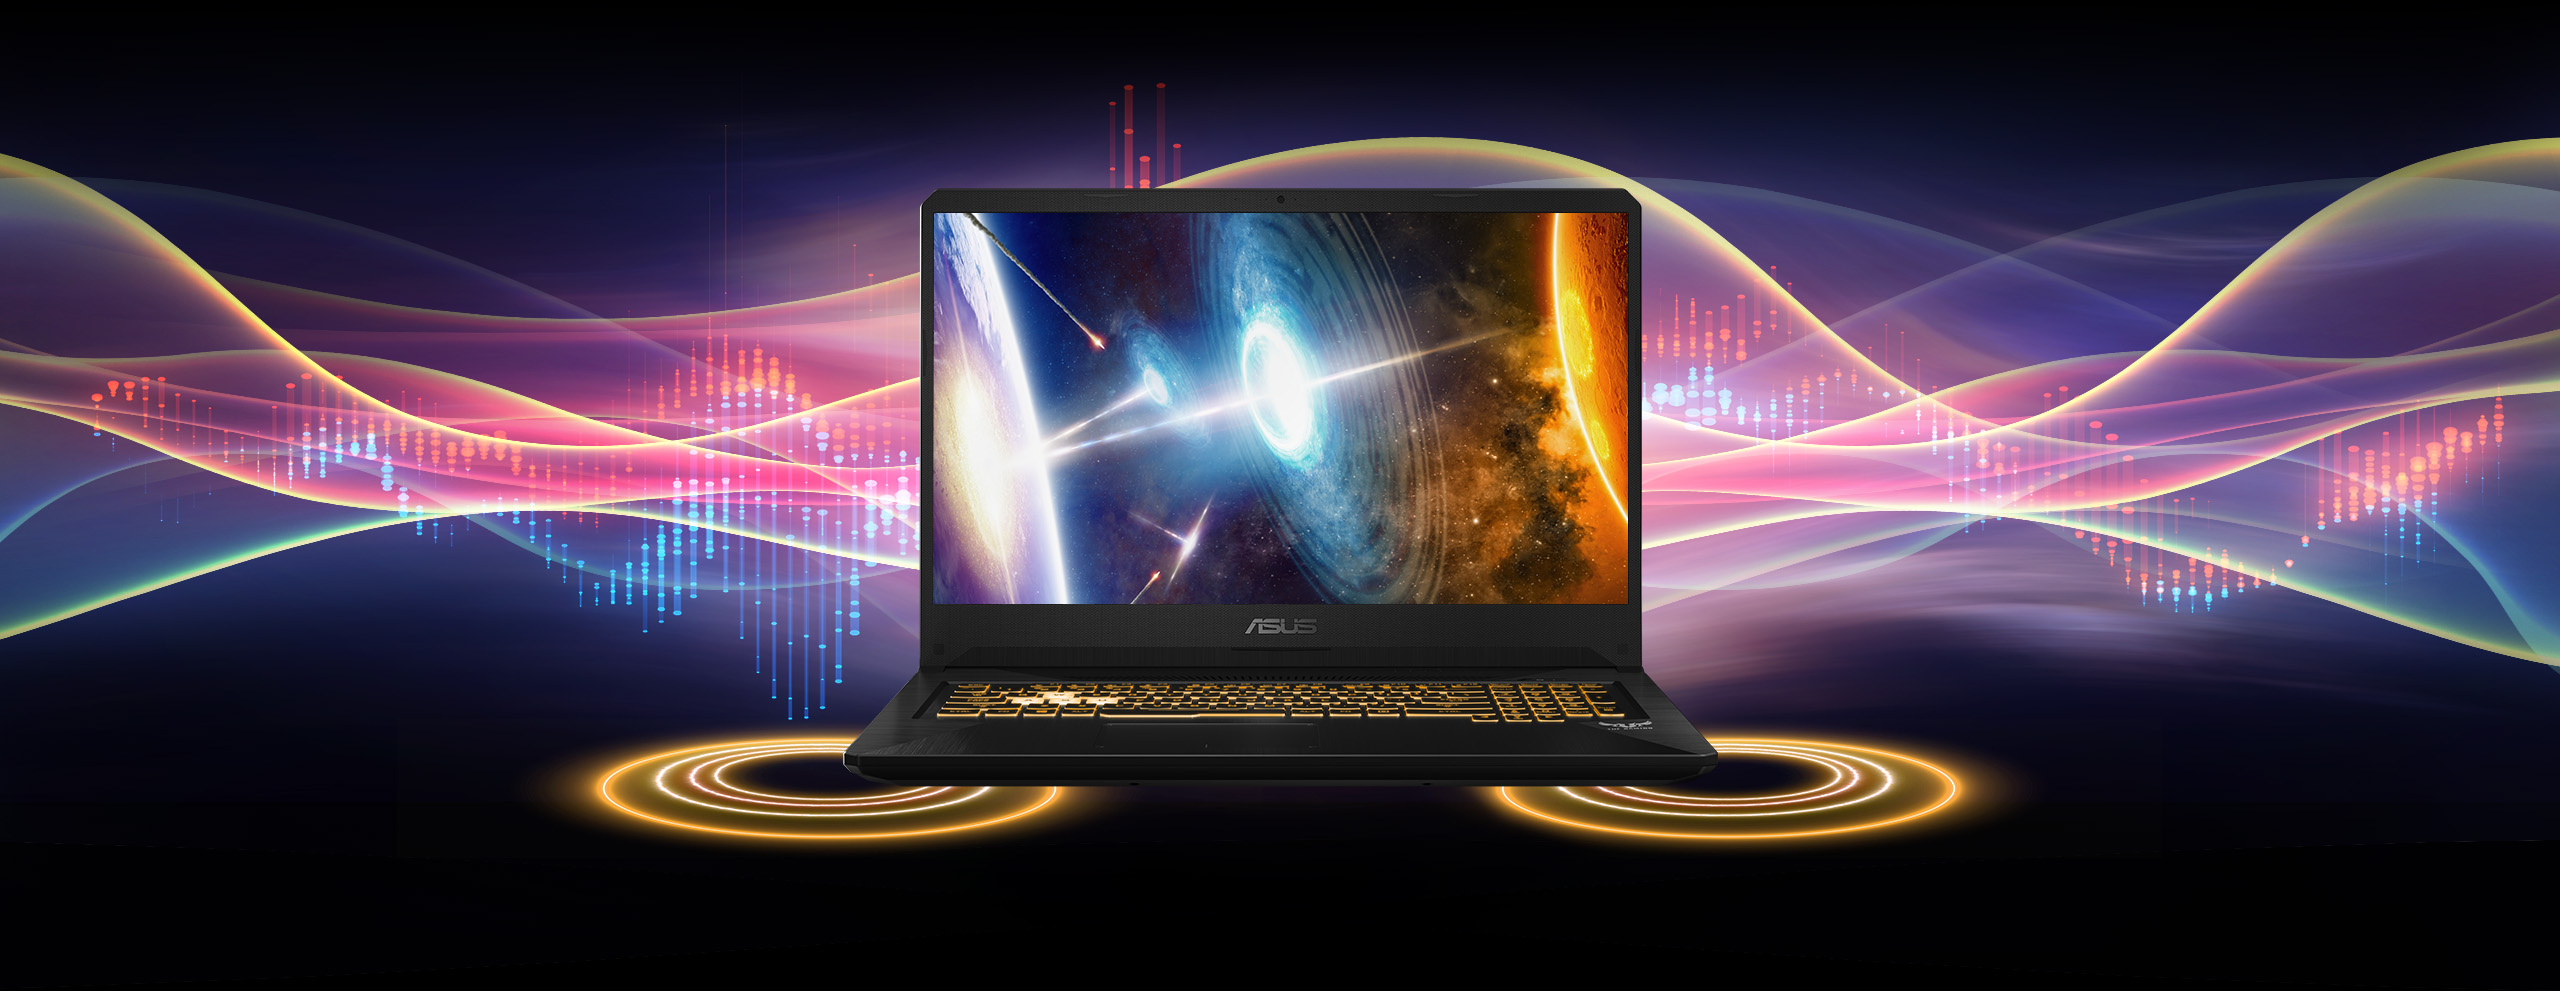 Asus Tuf Gaming Fx705gd Ew101t 17 3 Full Hd Slim Bezel Gaming Laptop Intel Core I5 8300h Processor 8gb Ram 1tb Hdd 16gb Intel Optane Nvidia Gtx 1050 4gb Graphics Windows 10